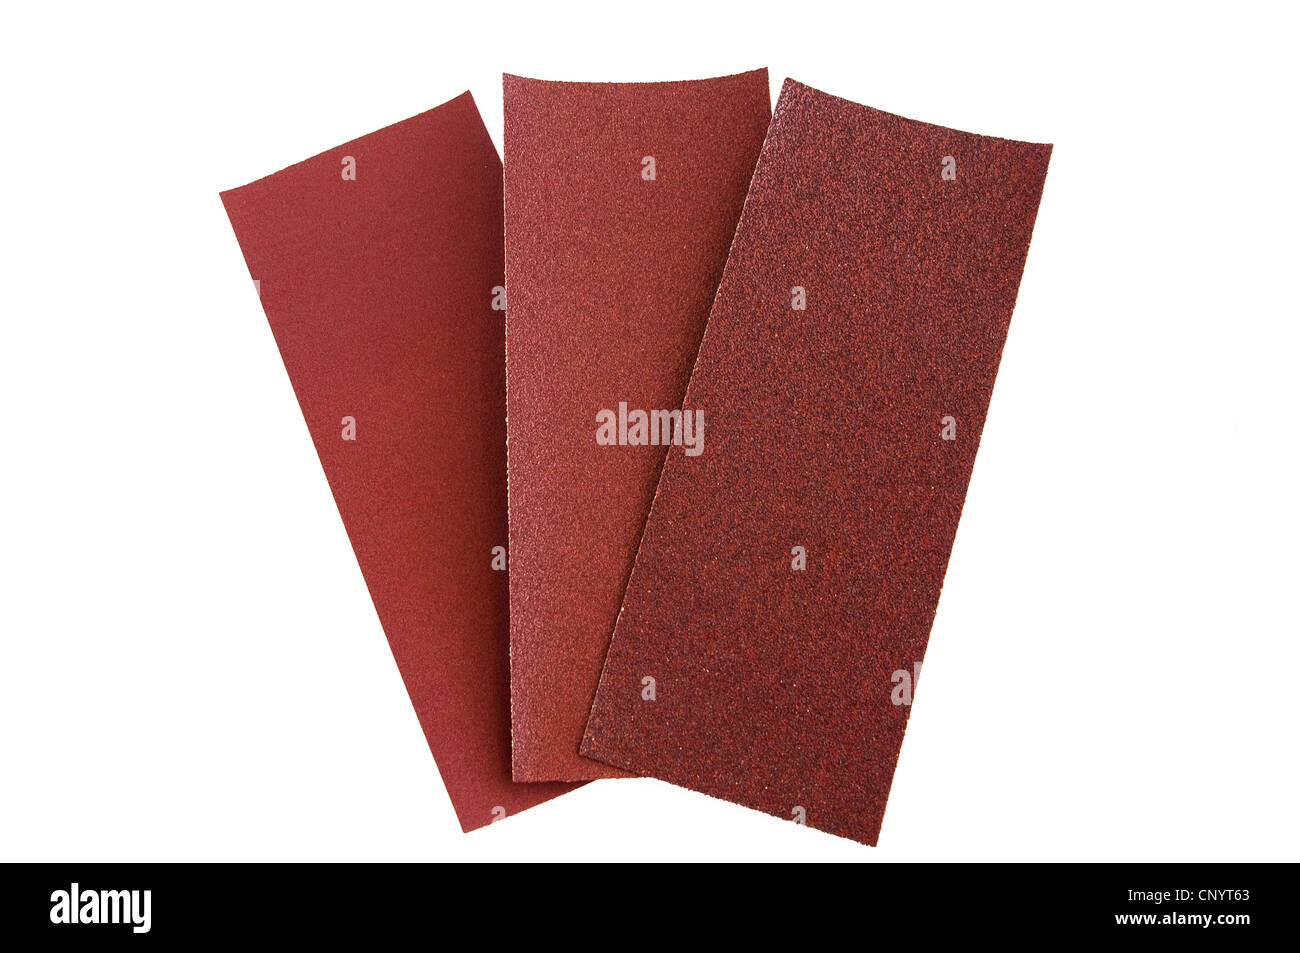 three different grit sandpaper on a white background - Stock Image